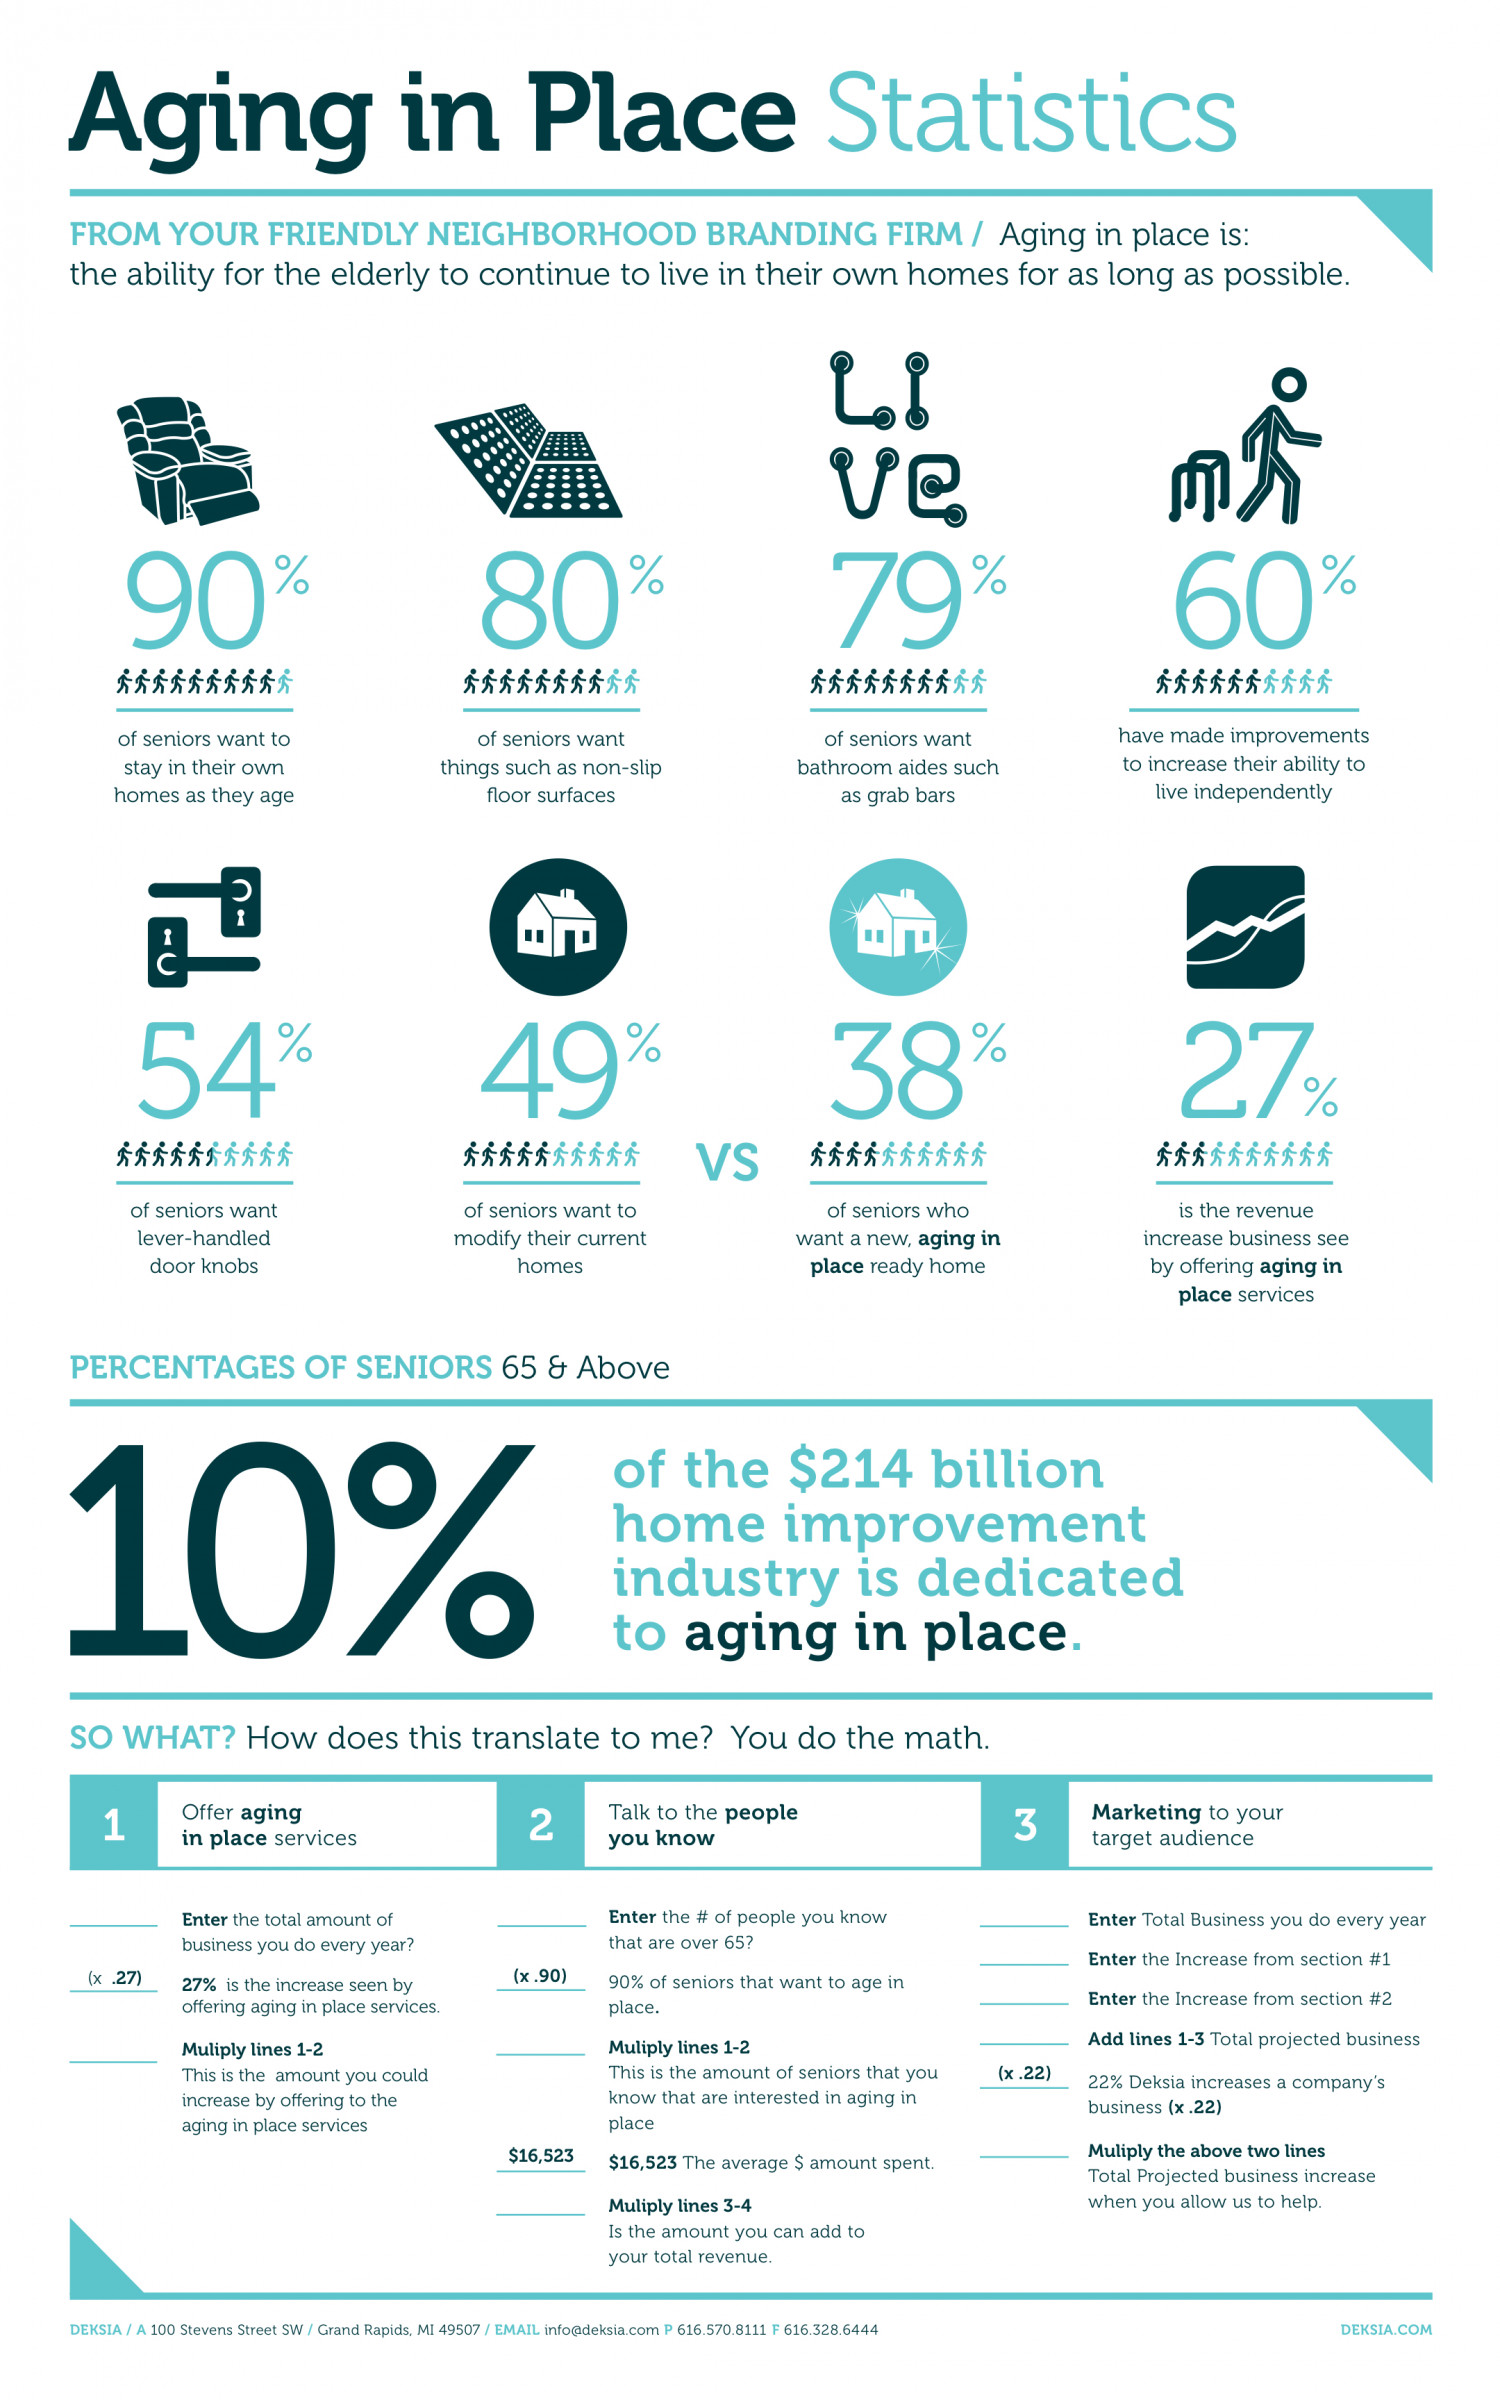 Aging in place | Visual.ly